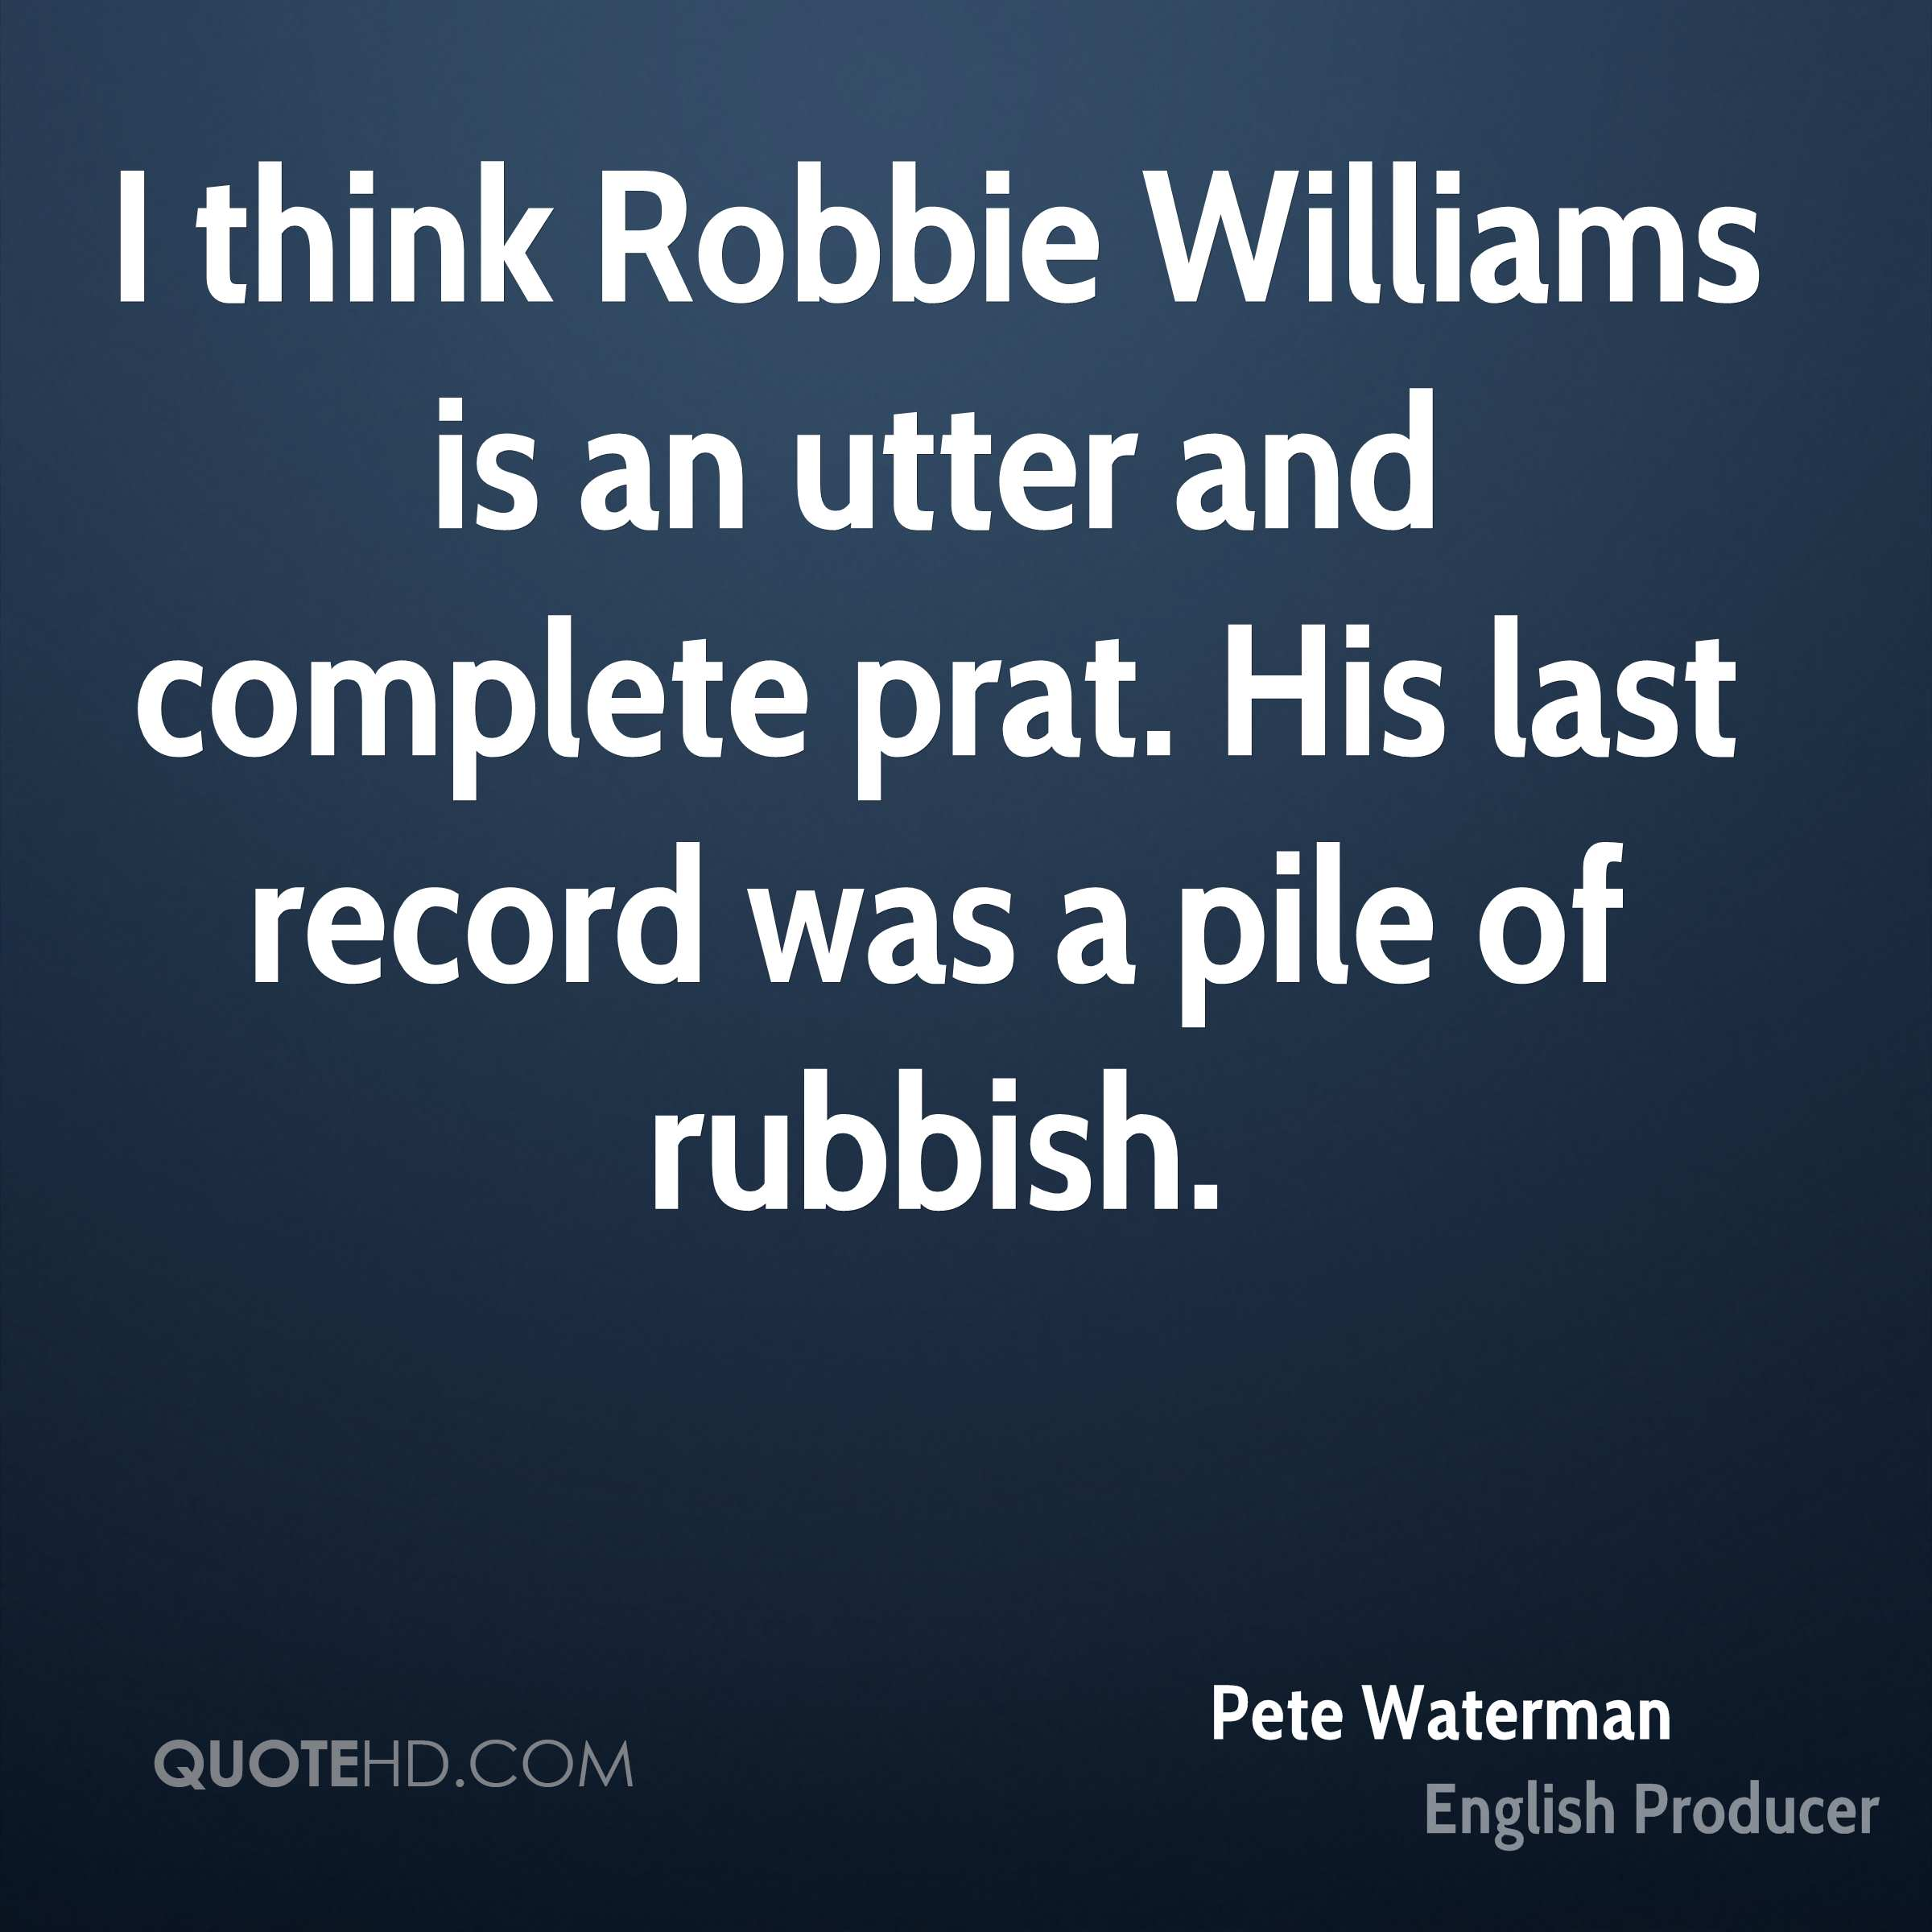 I think Robbie Williams is an utter and complete prat. His last record was a pile of rubbish.